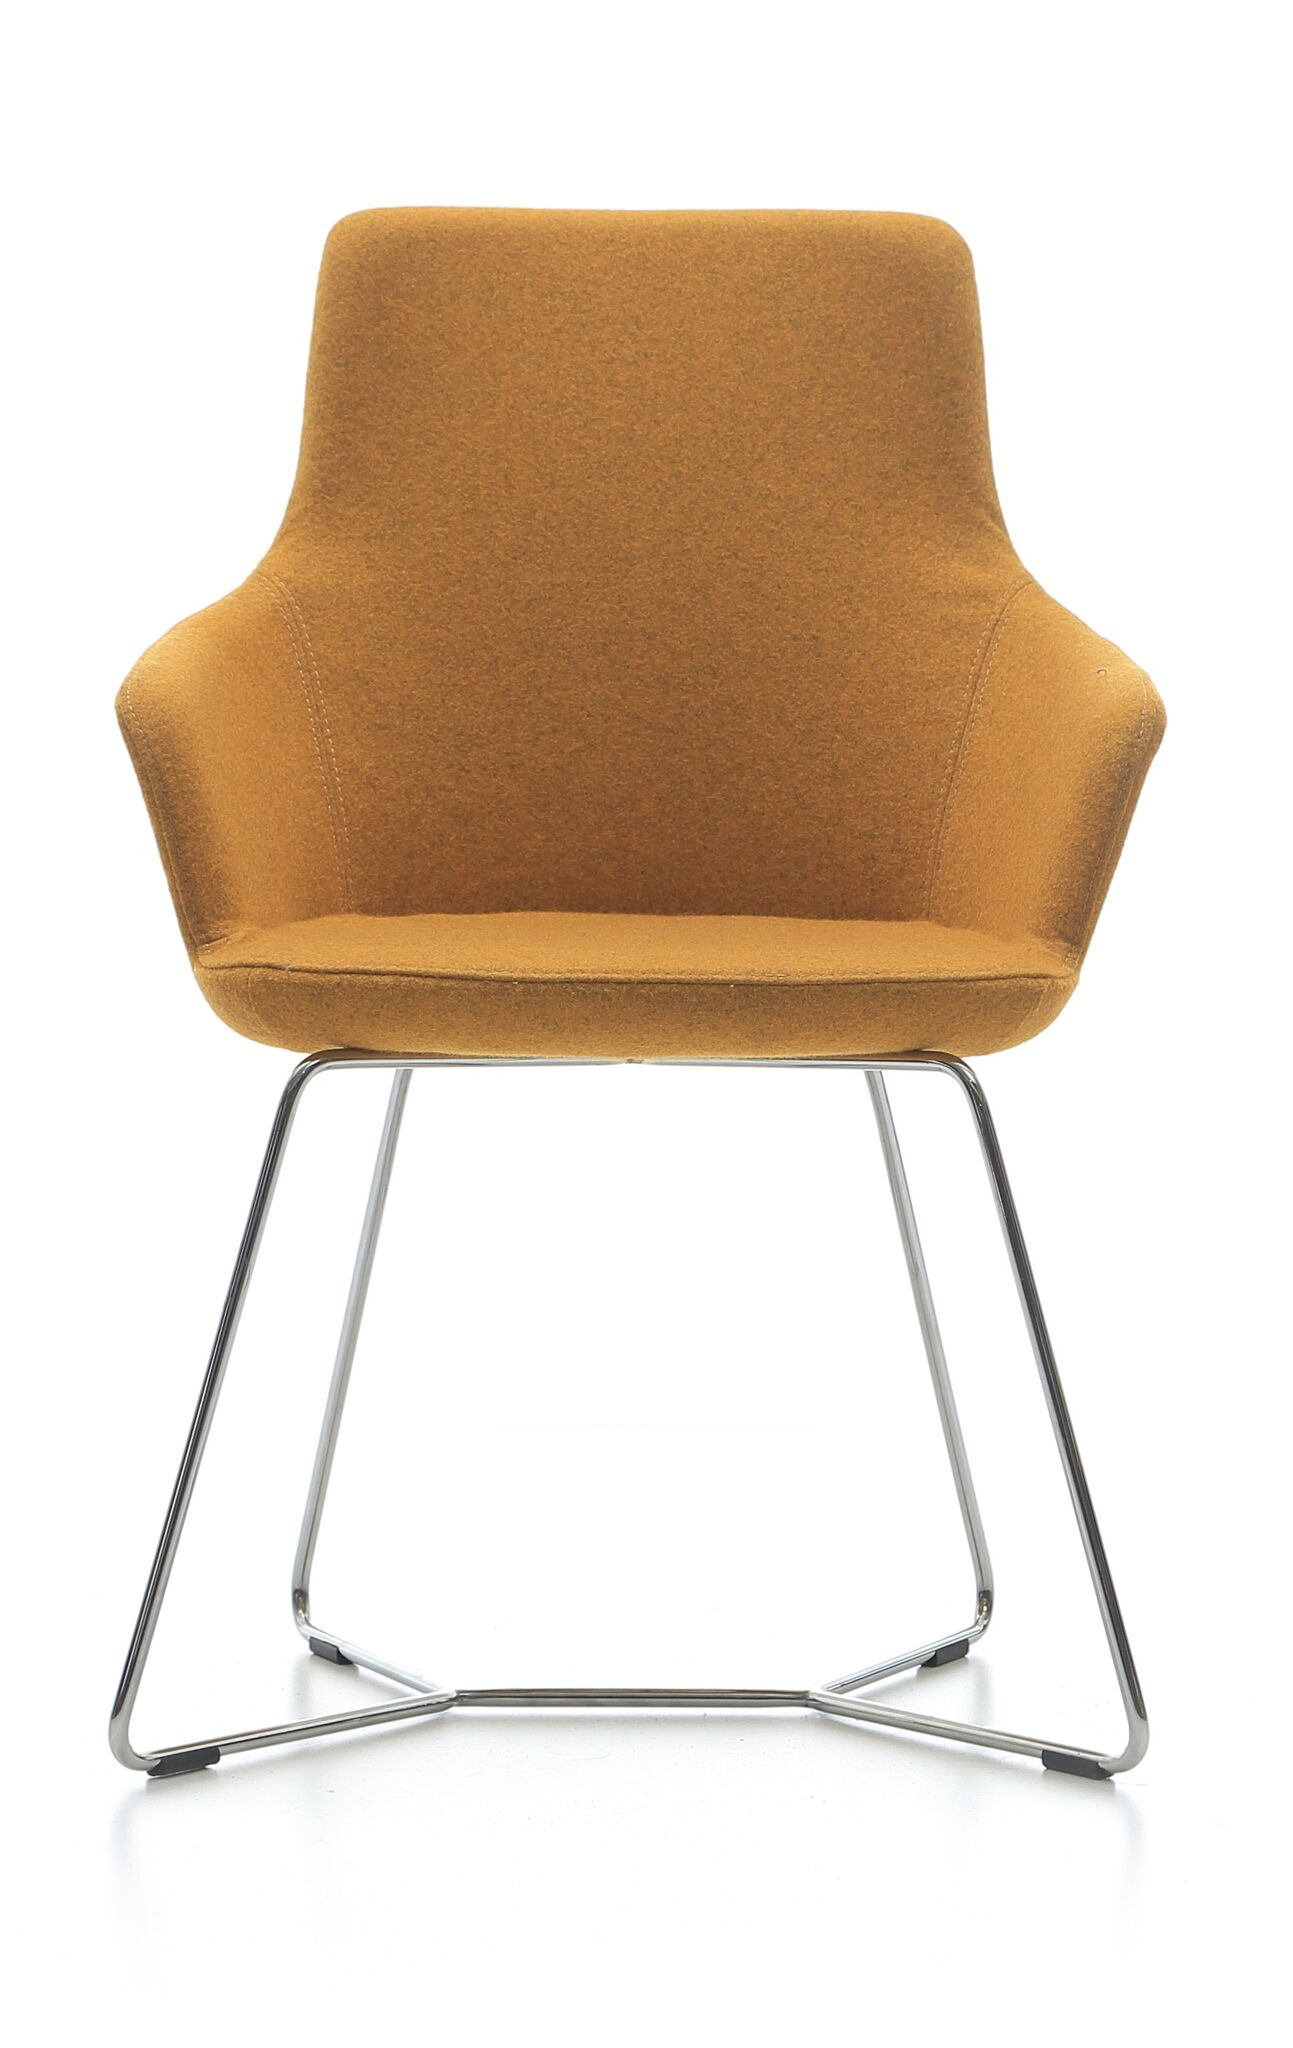 Customisable Fabric Armchair Designed and Manufactured by Catapult Design